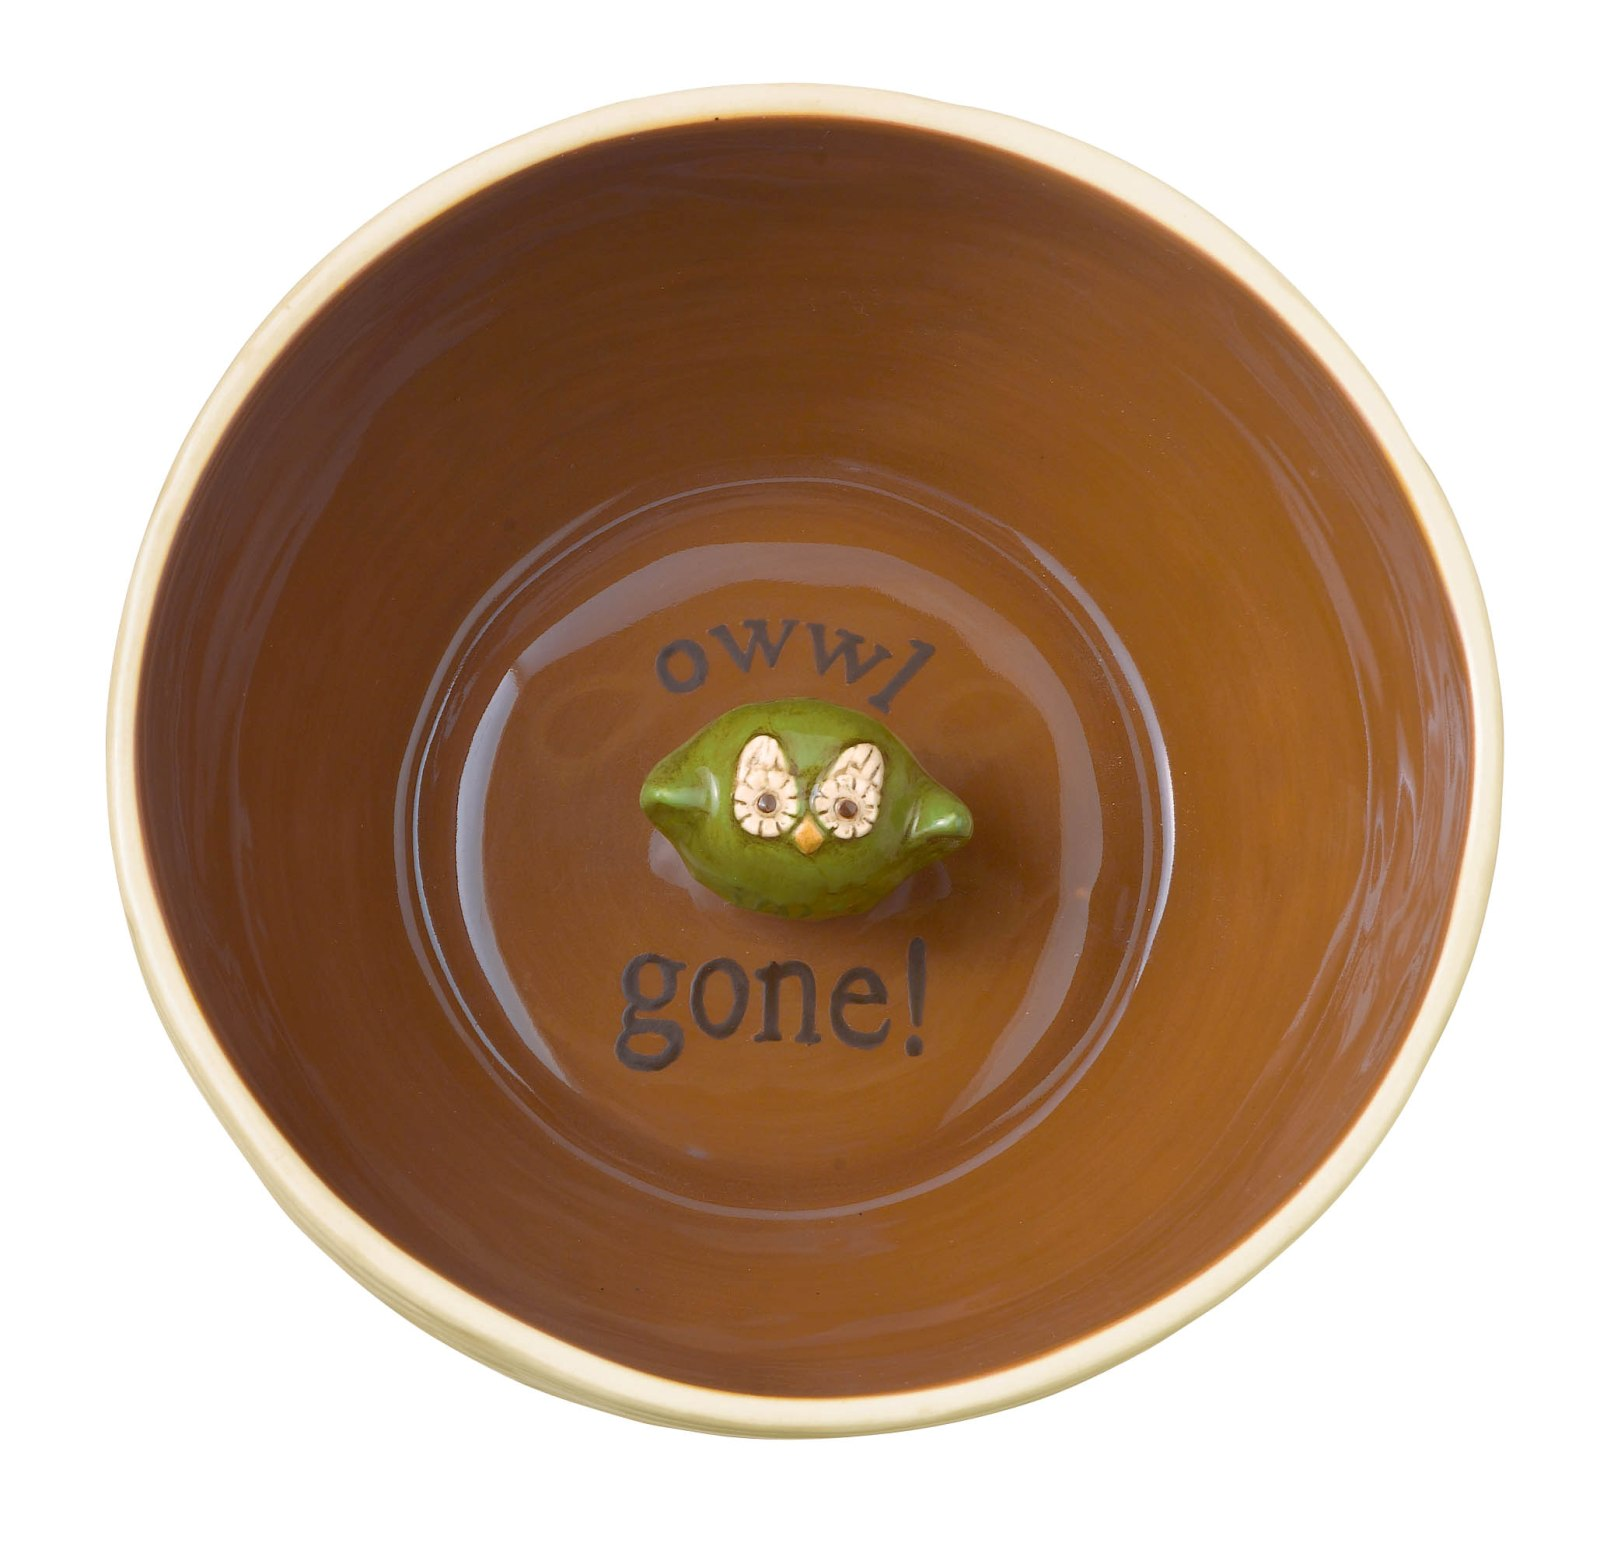 Crimson Hollow Owl Owwl Gone Ceramic Snack Bowl Grasslands Road